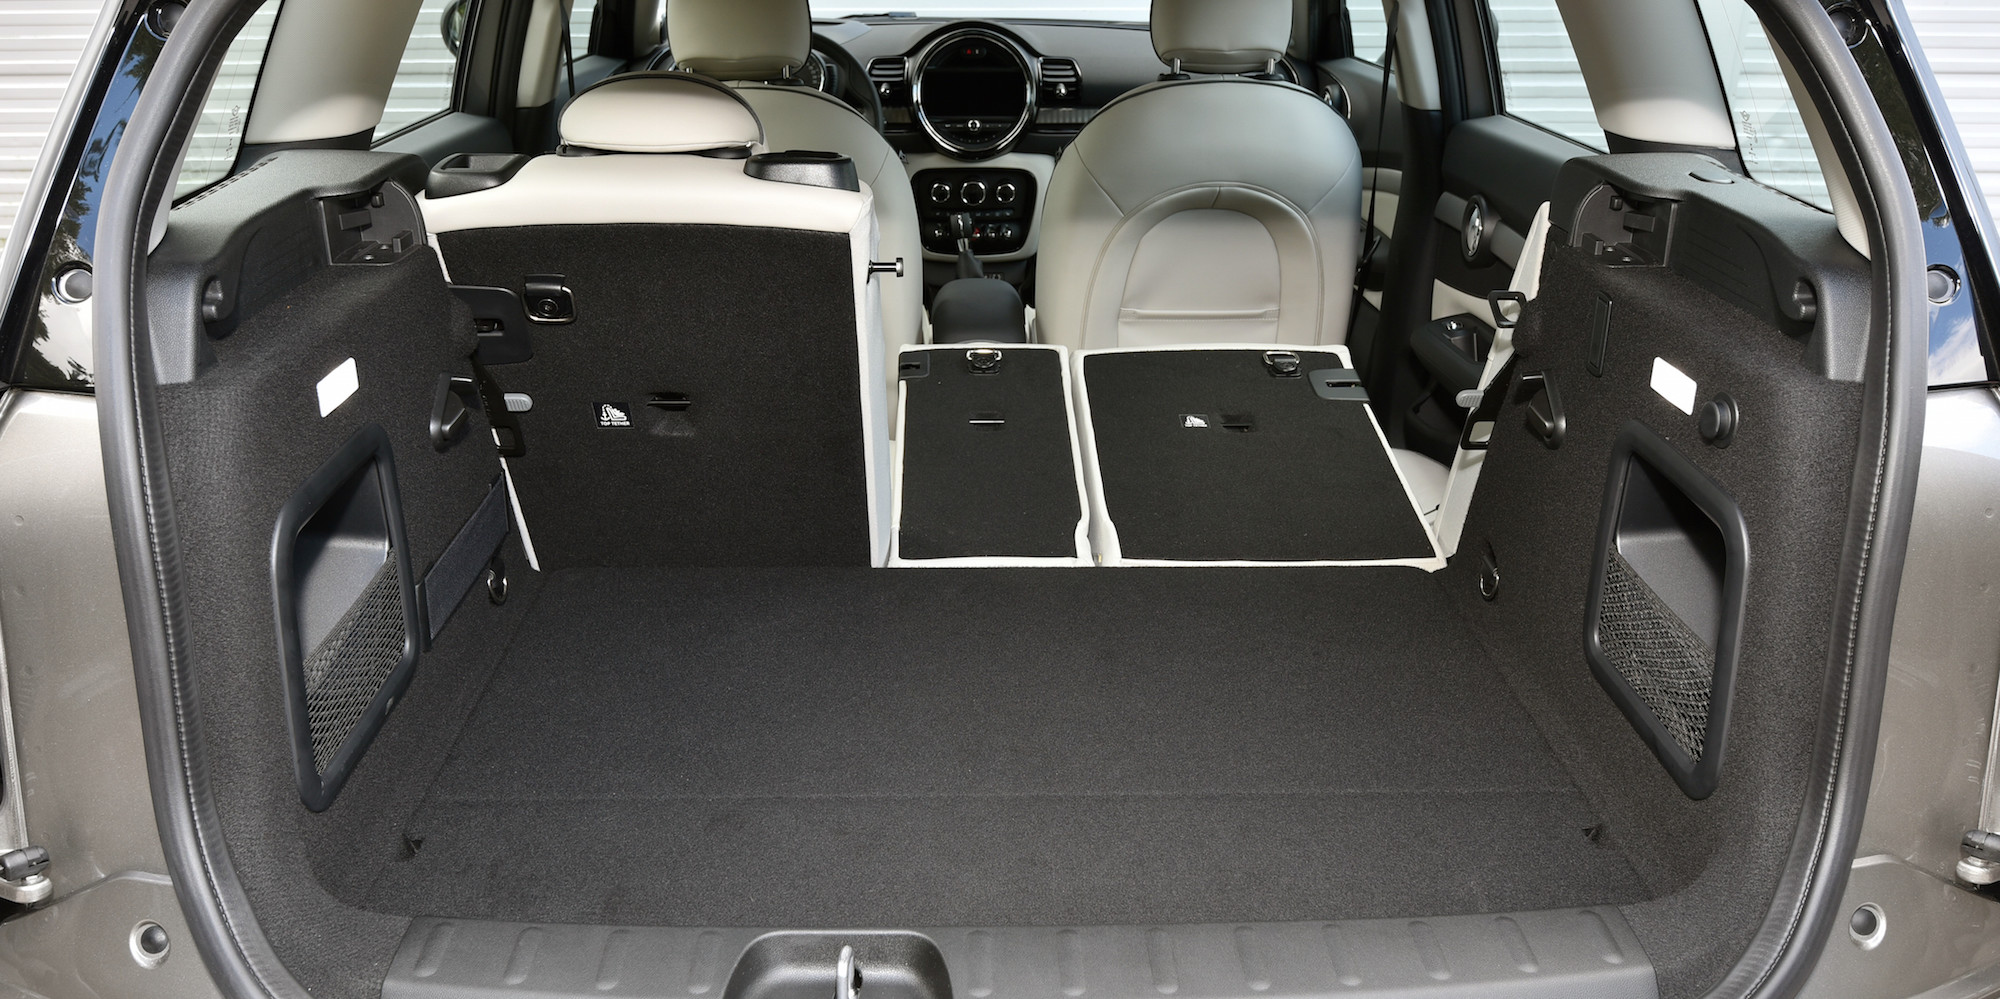 2016 Mini Cooper S Clubman Cargo Space (View 9 of 17)